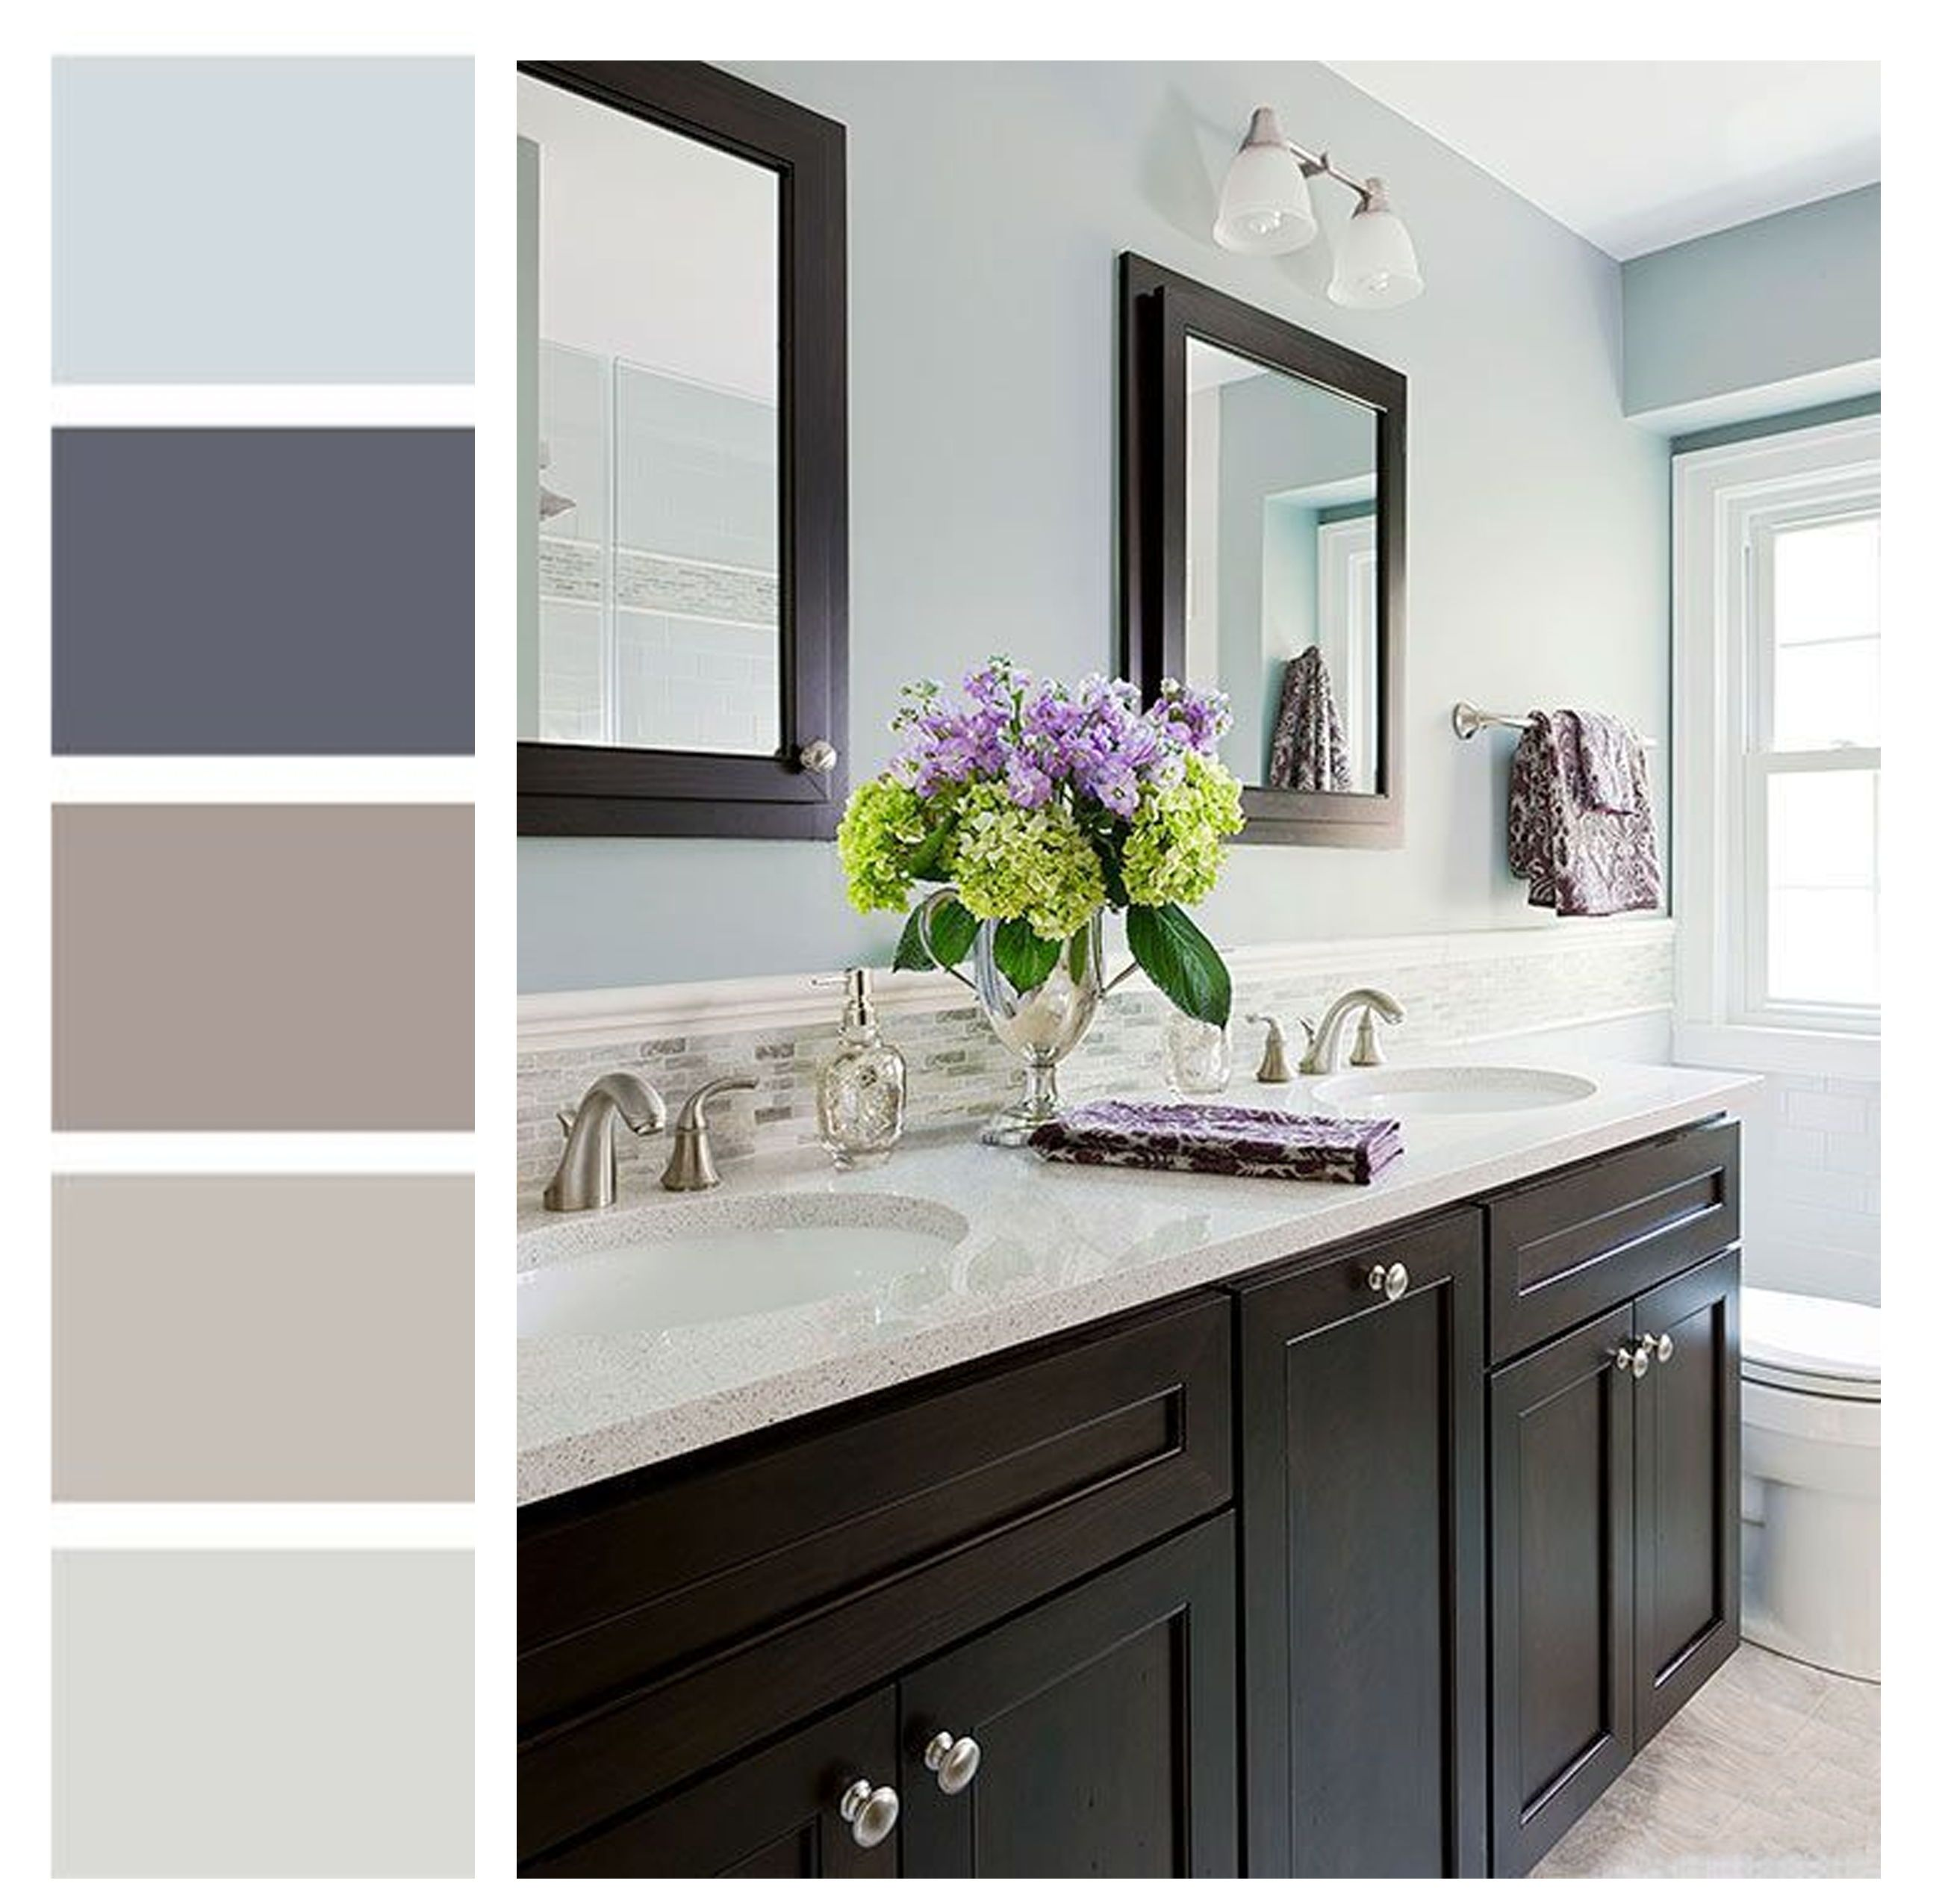 Have Trouble Mixing And Matching Color In Your Home Not Sure What The Right Paint Paint Color Selection Living Room Design Small Spaces Master Bedroom Colors